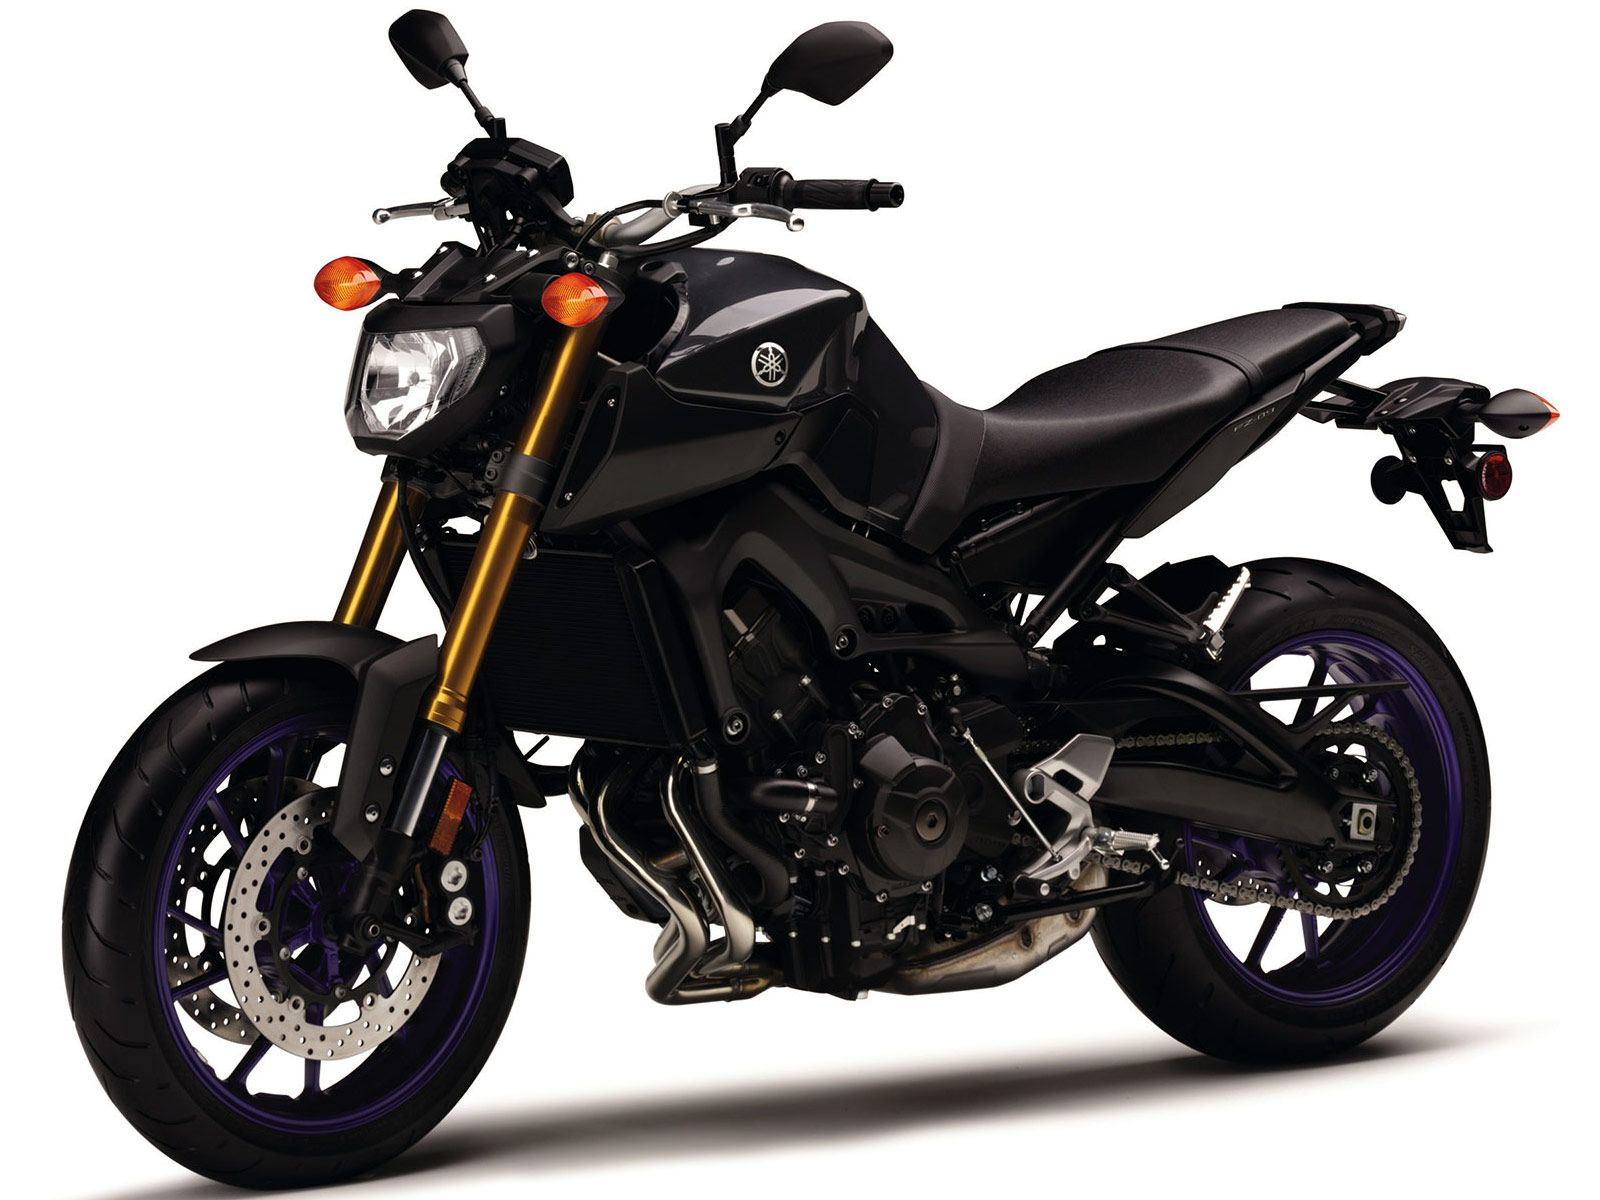 Yamaha Fz Fi Overview Yamaha Fz Fi Price Yamaha Fz Fi Cc Average Available Colors 100bikes Com Yamaha Fz 09 Yamaha Fz Fz09